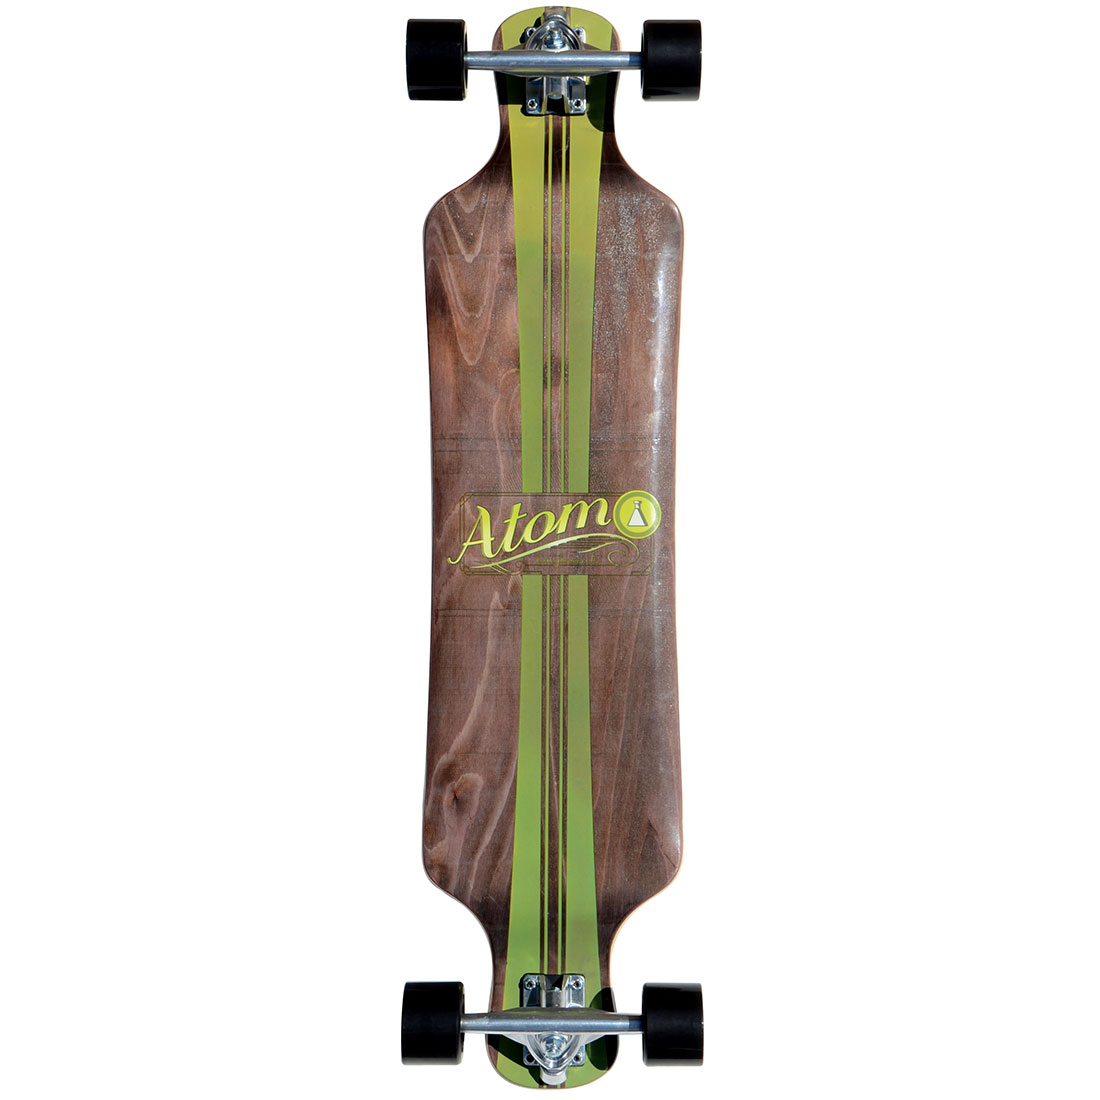 40009 Atom 39 Inch Drop-Deck Longboard - Artisan Brown